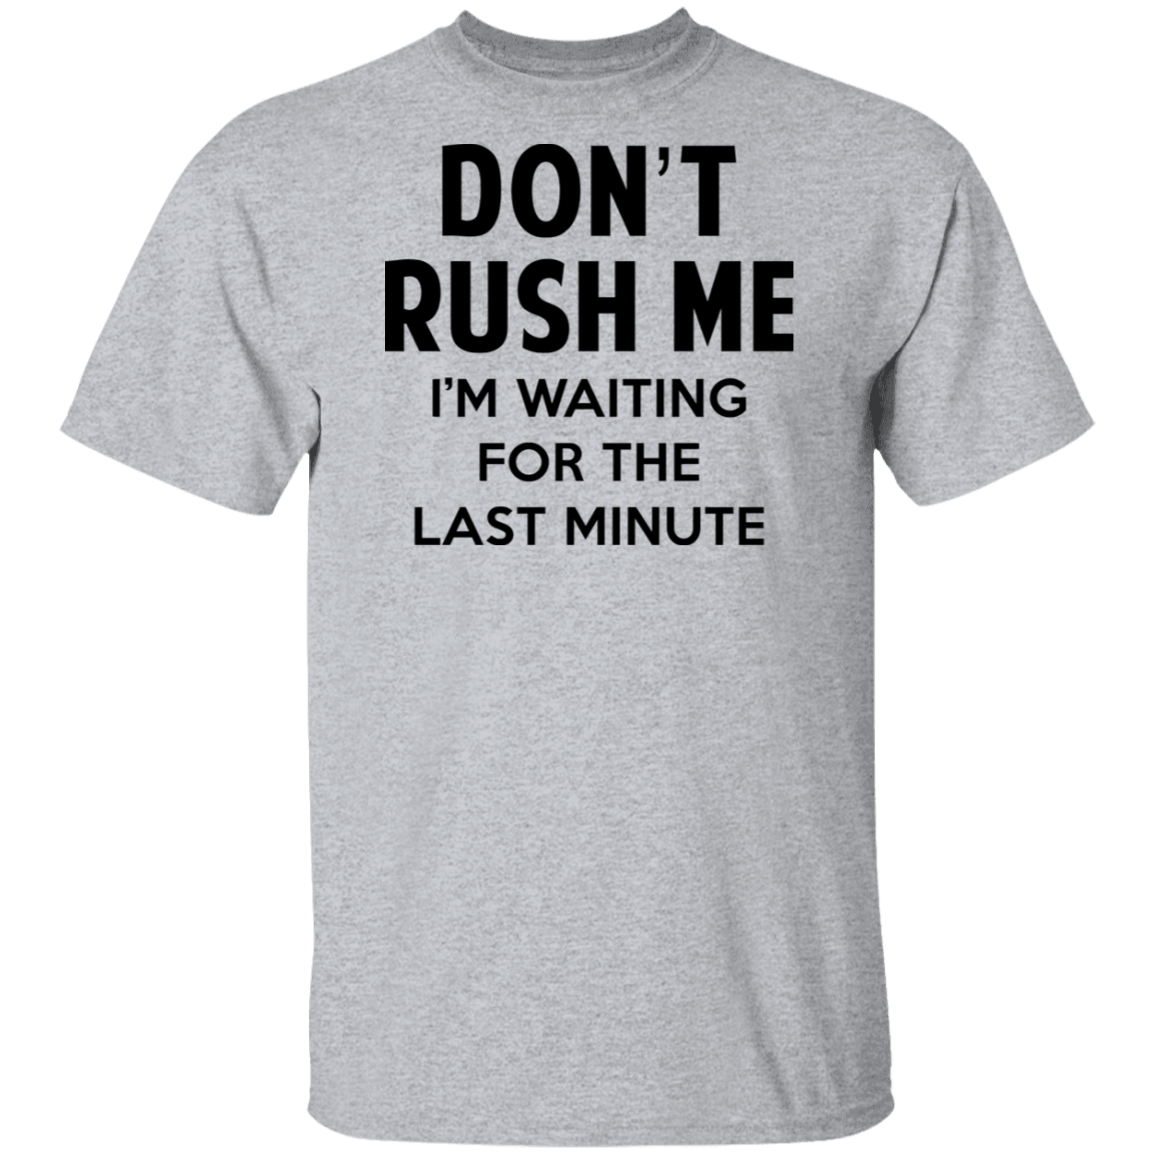 Don't Rush Me I'm Waiting For The Last Minute T-Shirts, Hoodies, Tank 1049-9972-80563636-48200 - Tee Ript